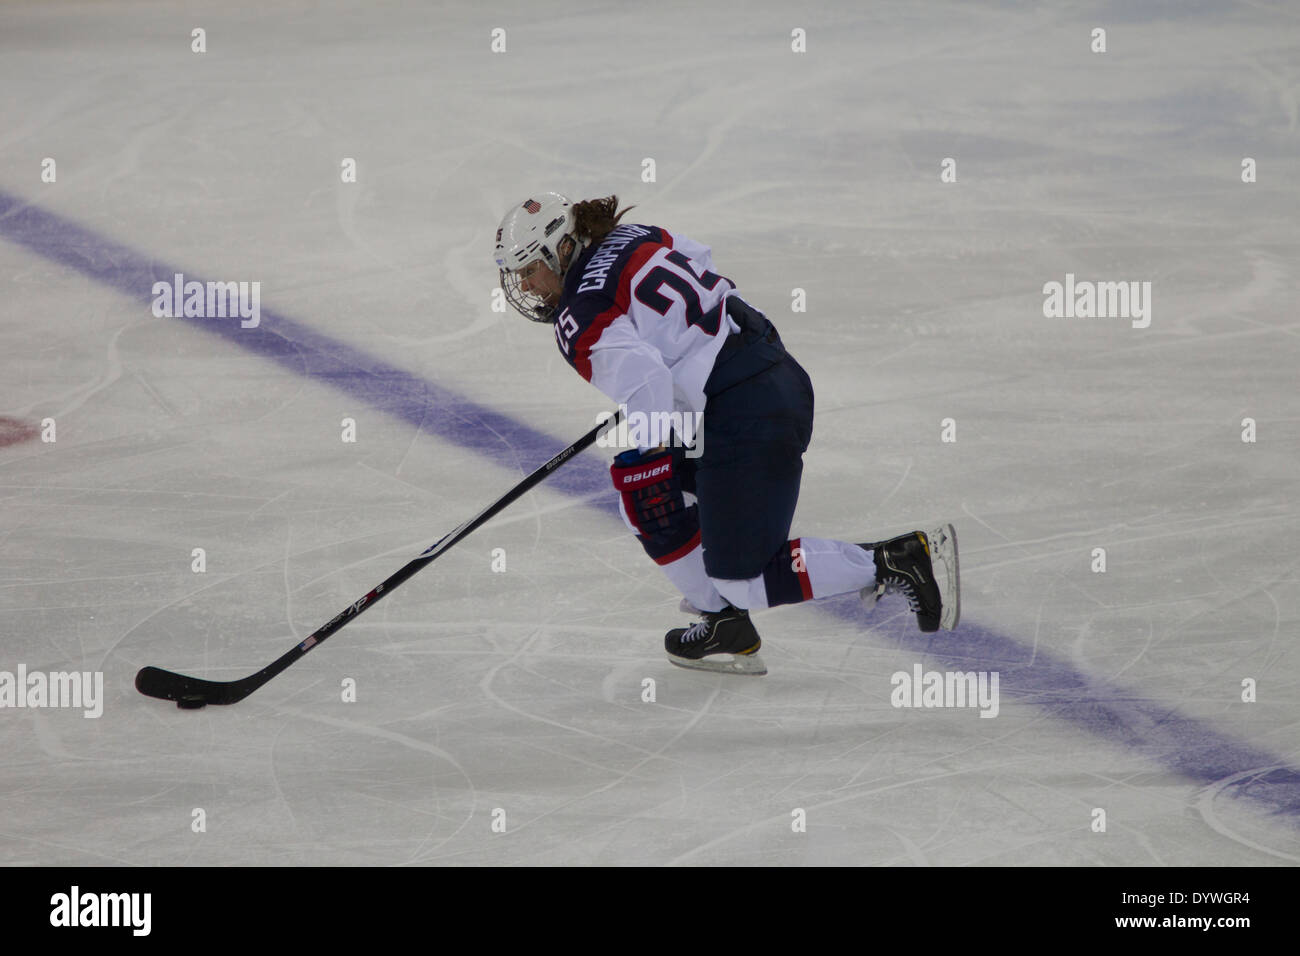 Alex Carpenter (USA), USA-Canada Women's Ice Hockey at the Olympic Winter Games, Sochi 2014 - Stock Image